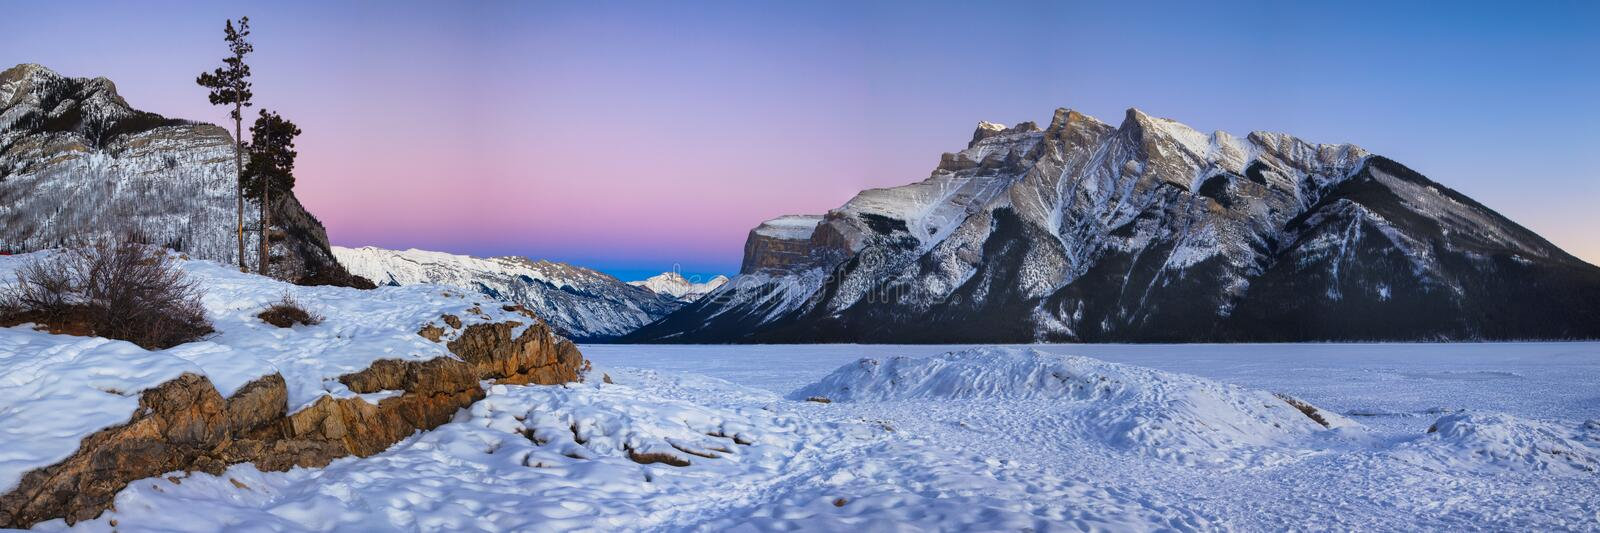 Frozen Lake Minnewanka in Banff National Park, Alberta stock image